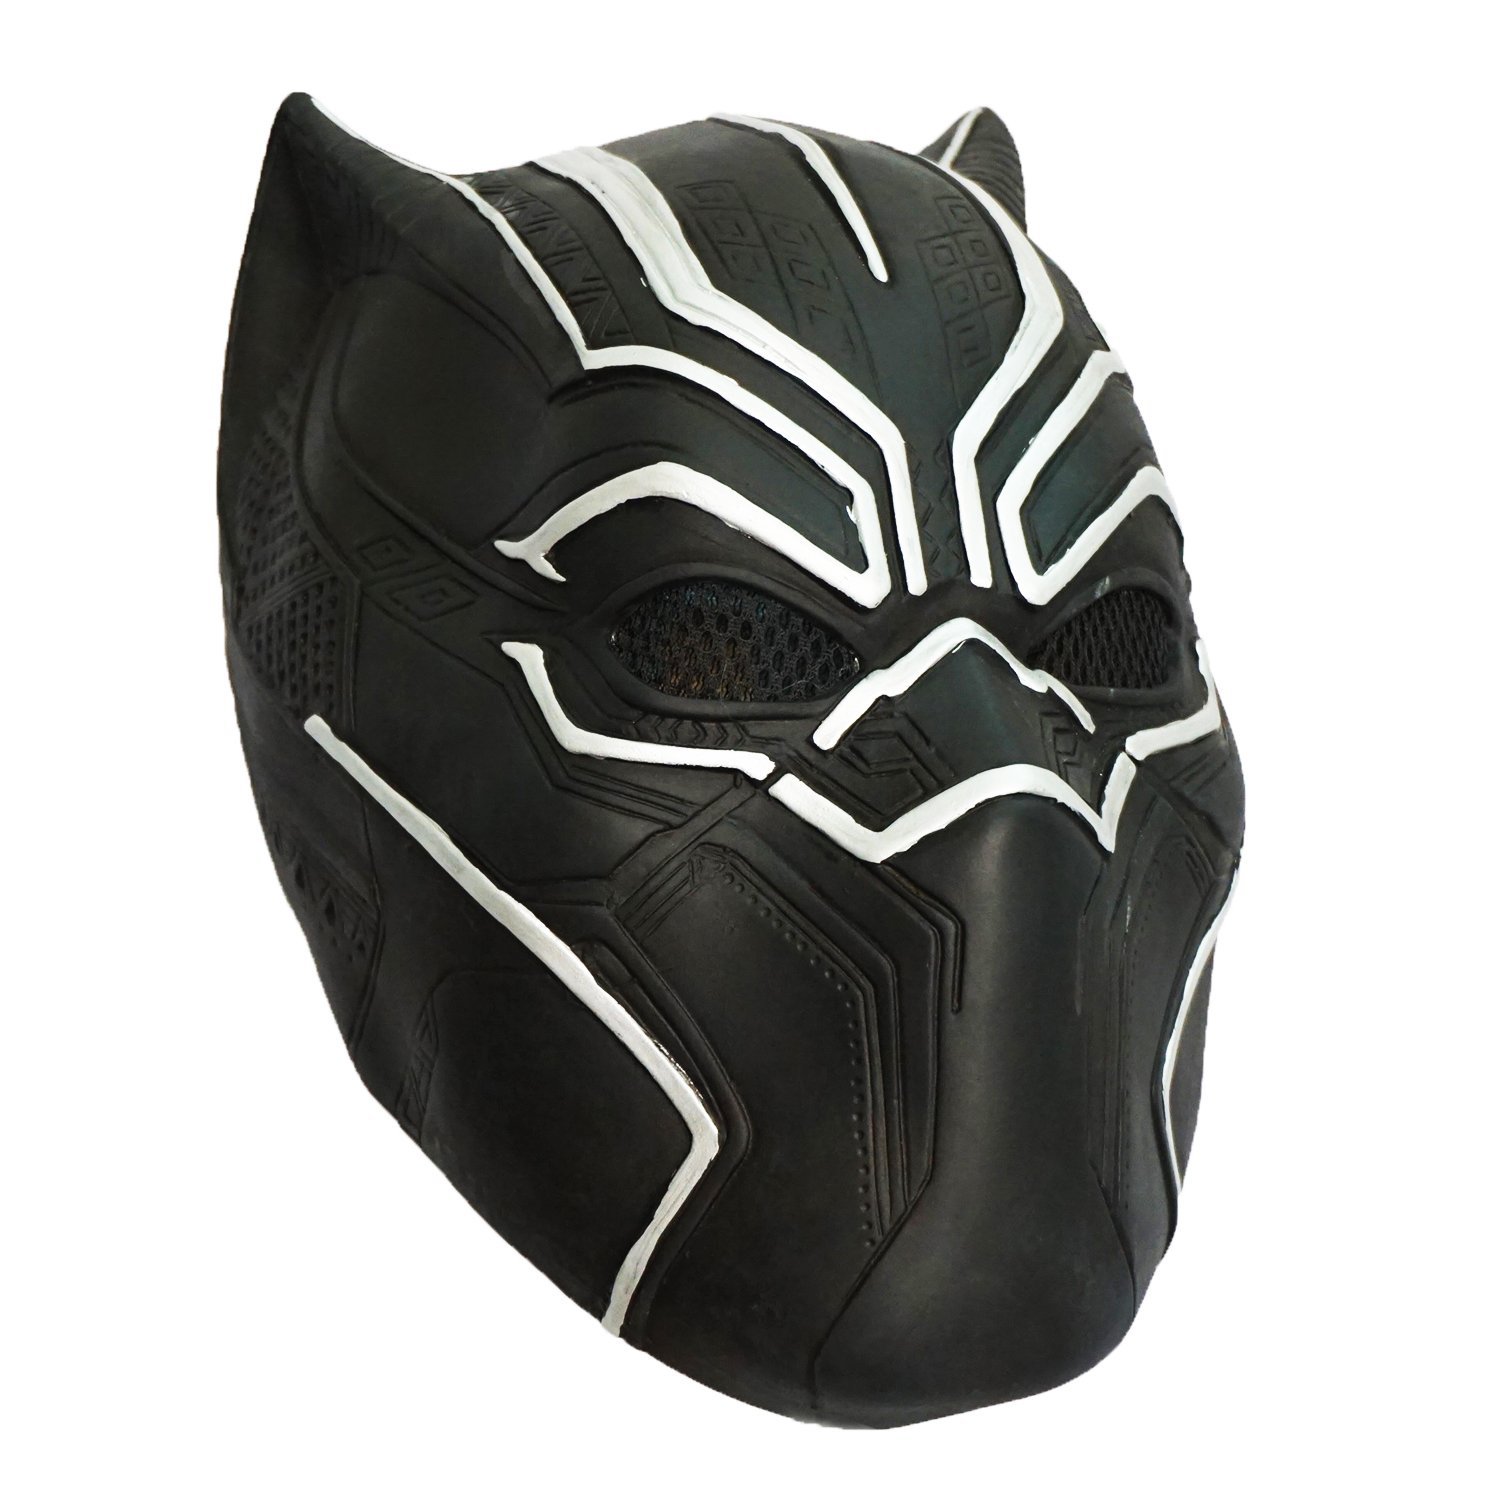 Civil War Black Panther Mask Captain America 3 Hero Latex Helmet Halloween Cosplay